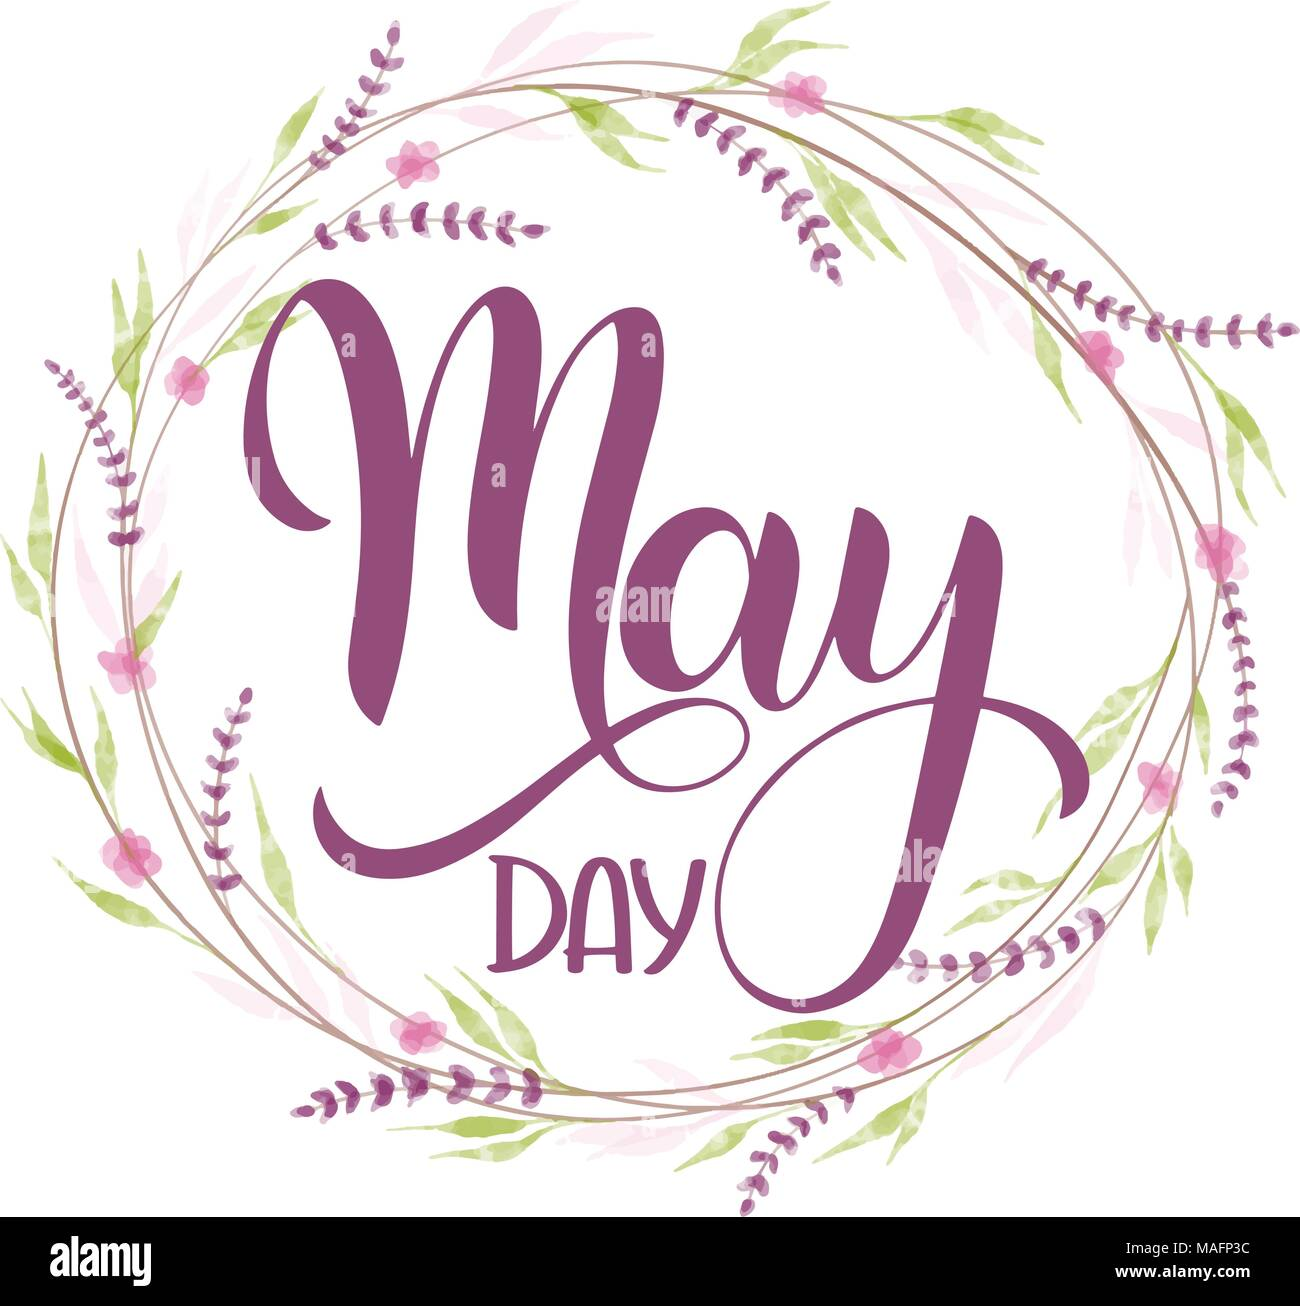 Seasons greeting stock photos seasons greeting stock images alamy hello may lettering elements for invitations posters greeting cards seasons greetings kristyandbryce Images